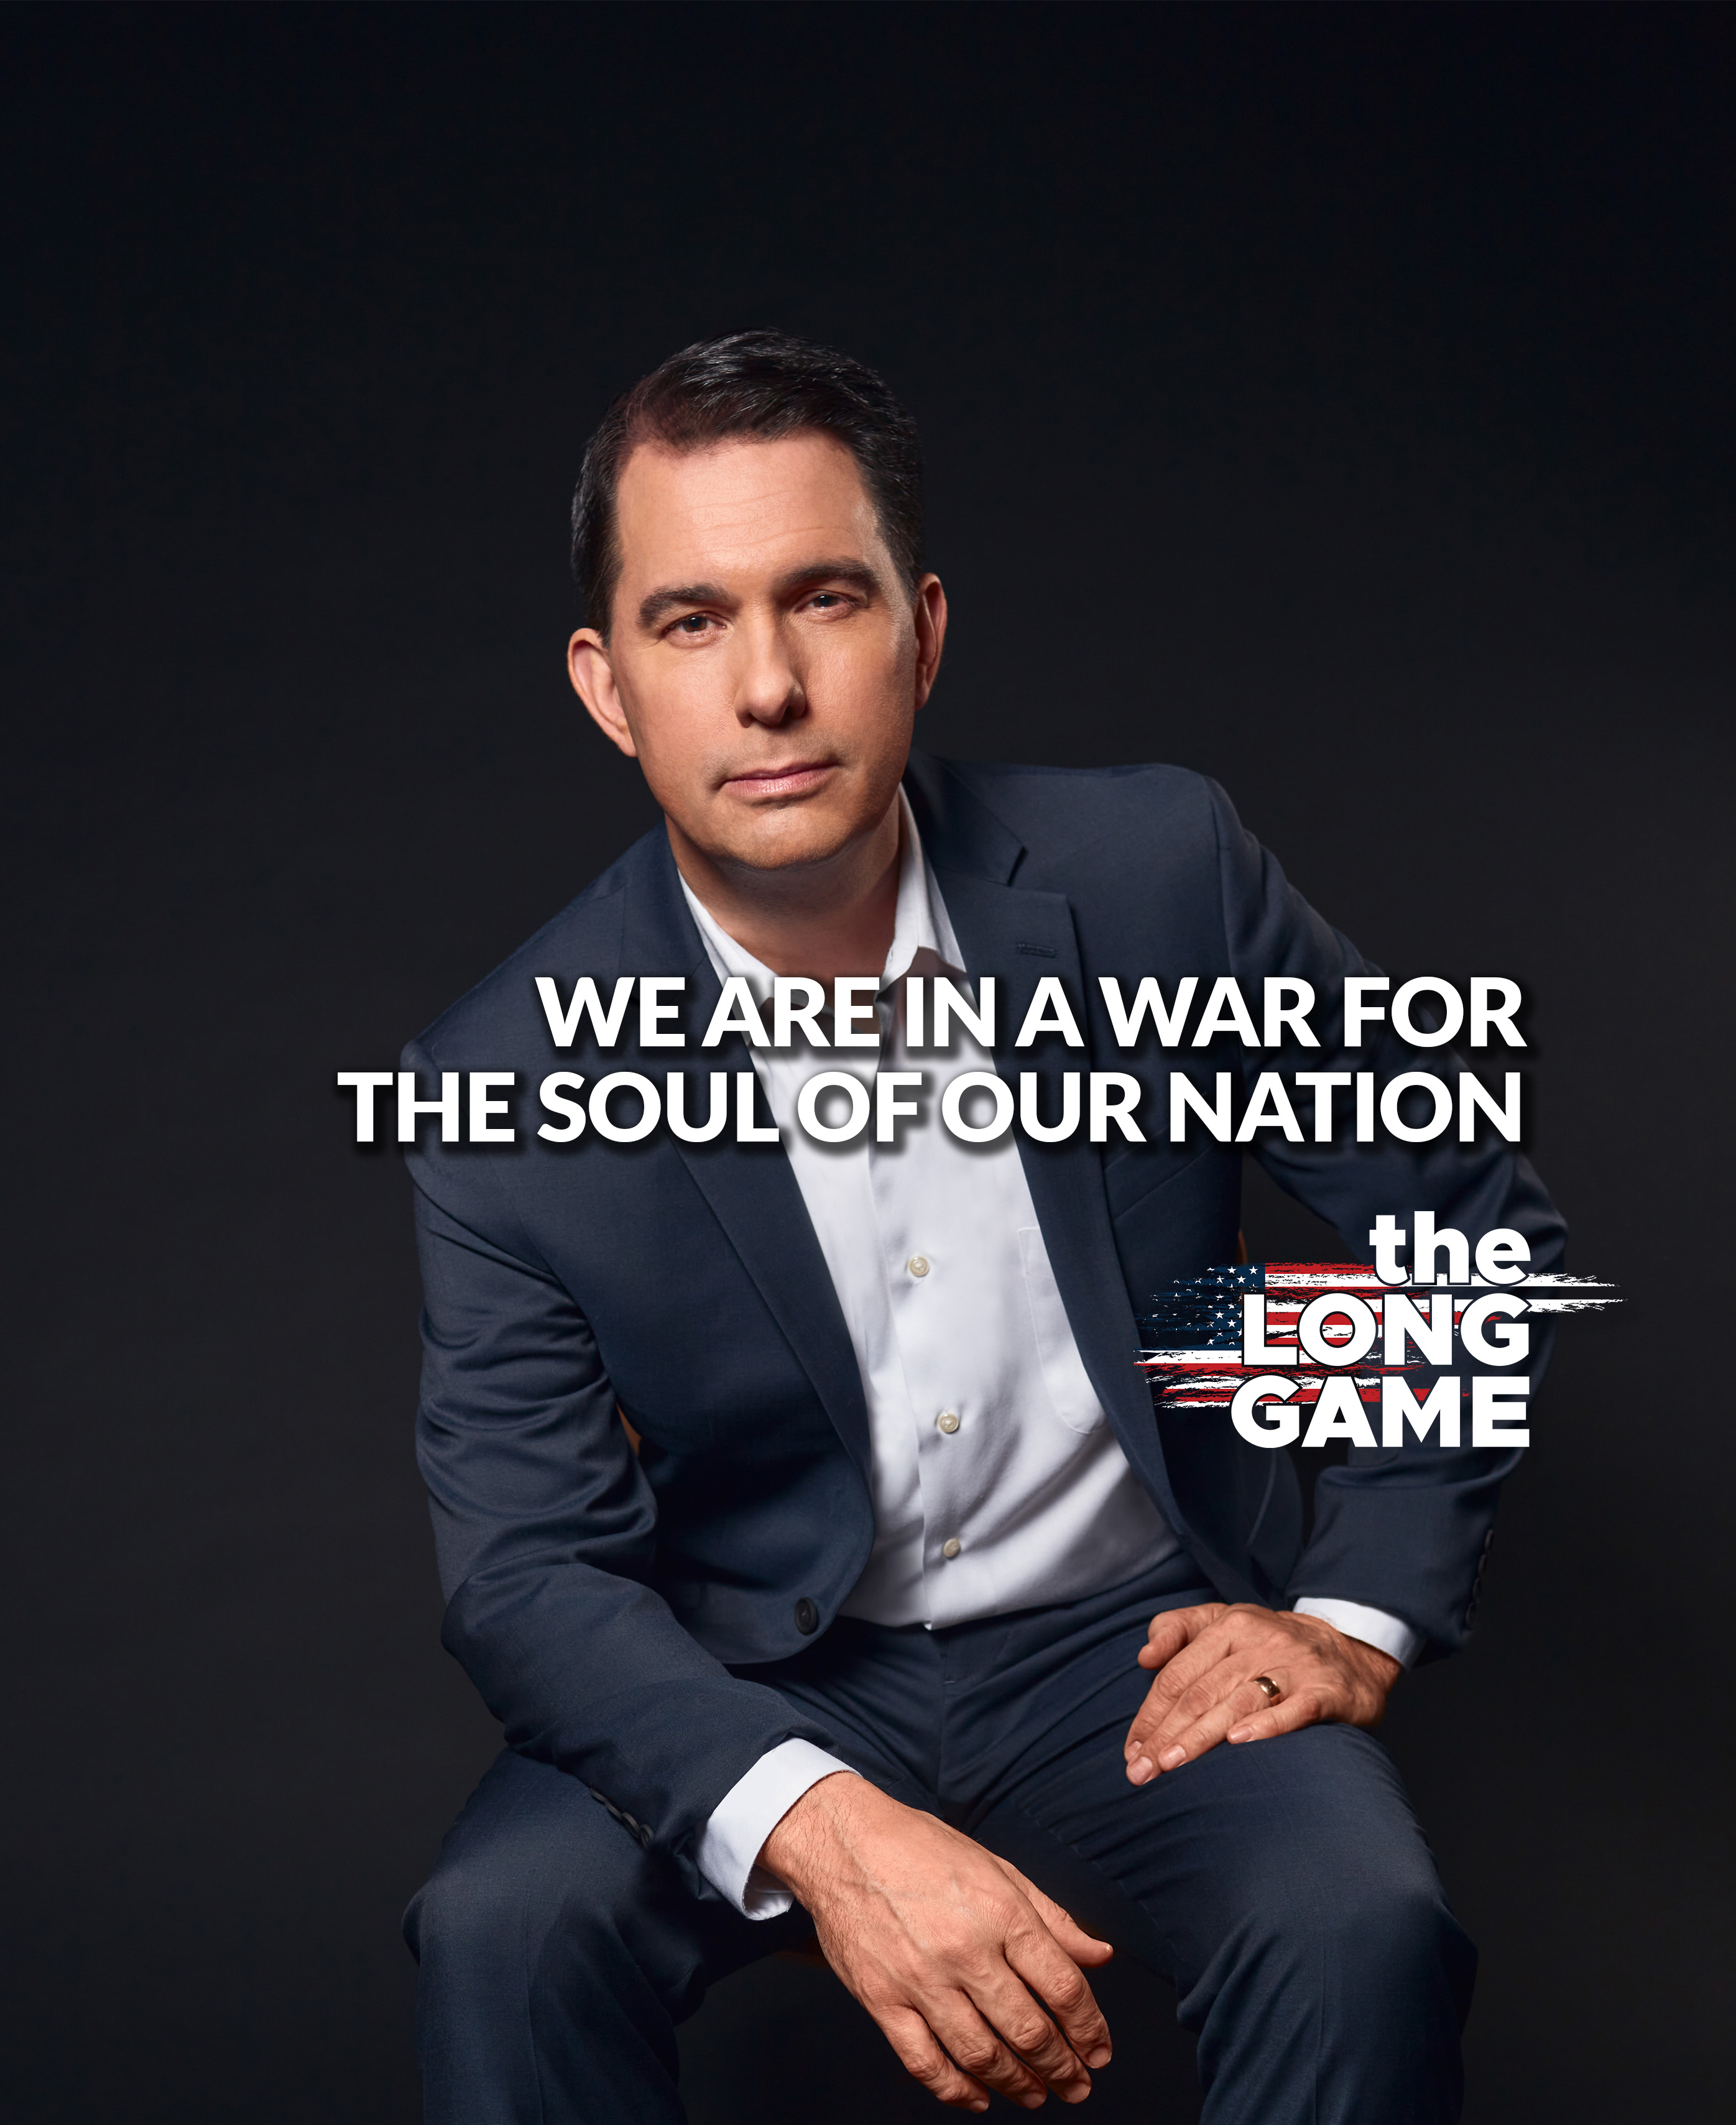 <h1><b>Join the Long Game to save America</b></h1>